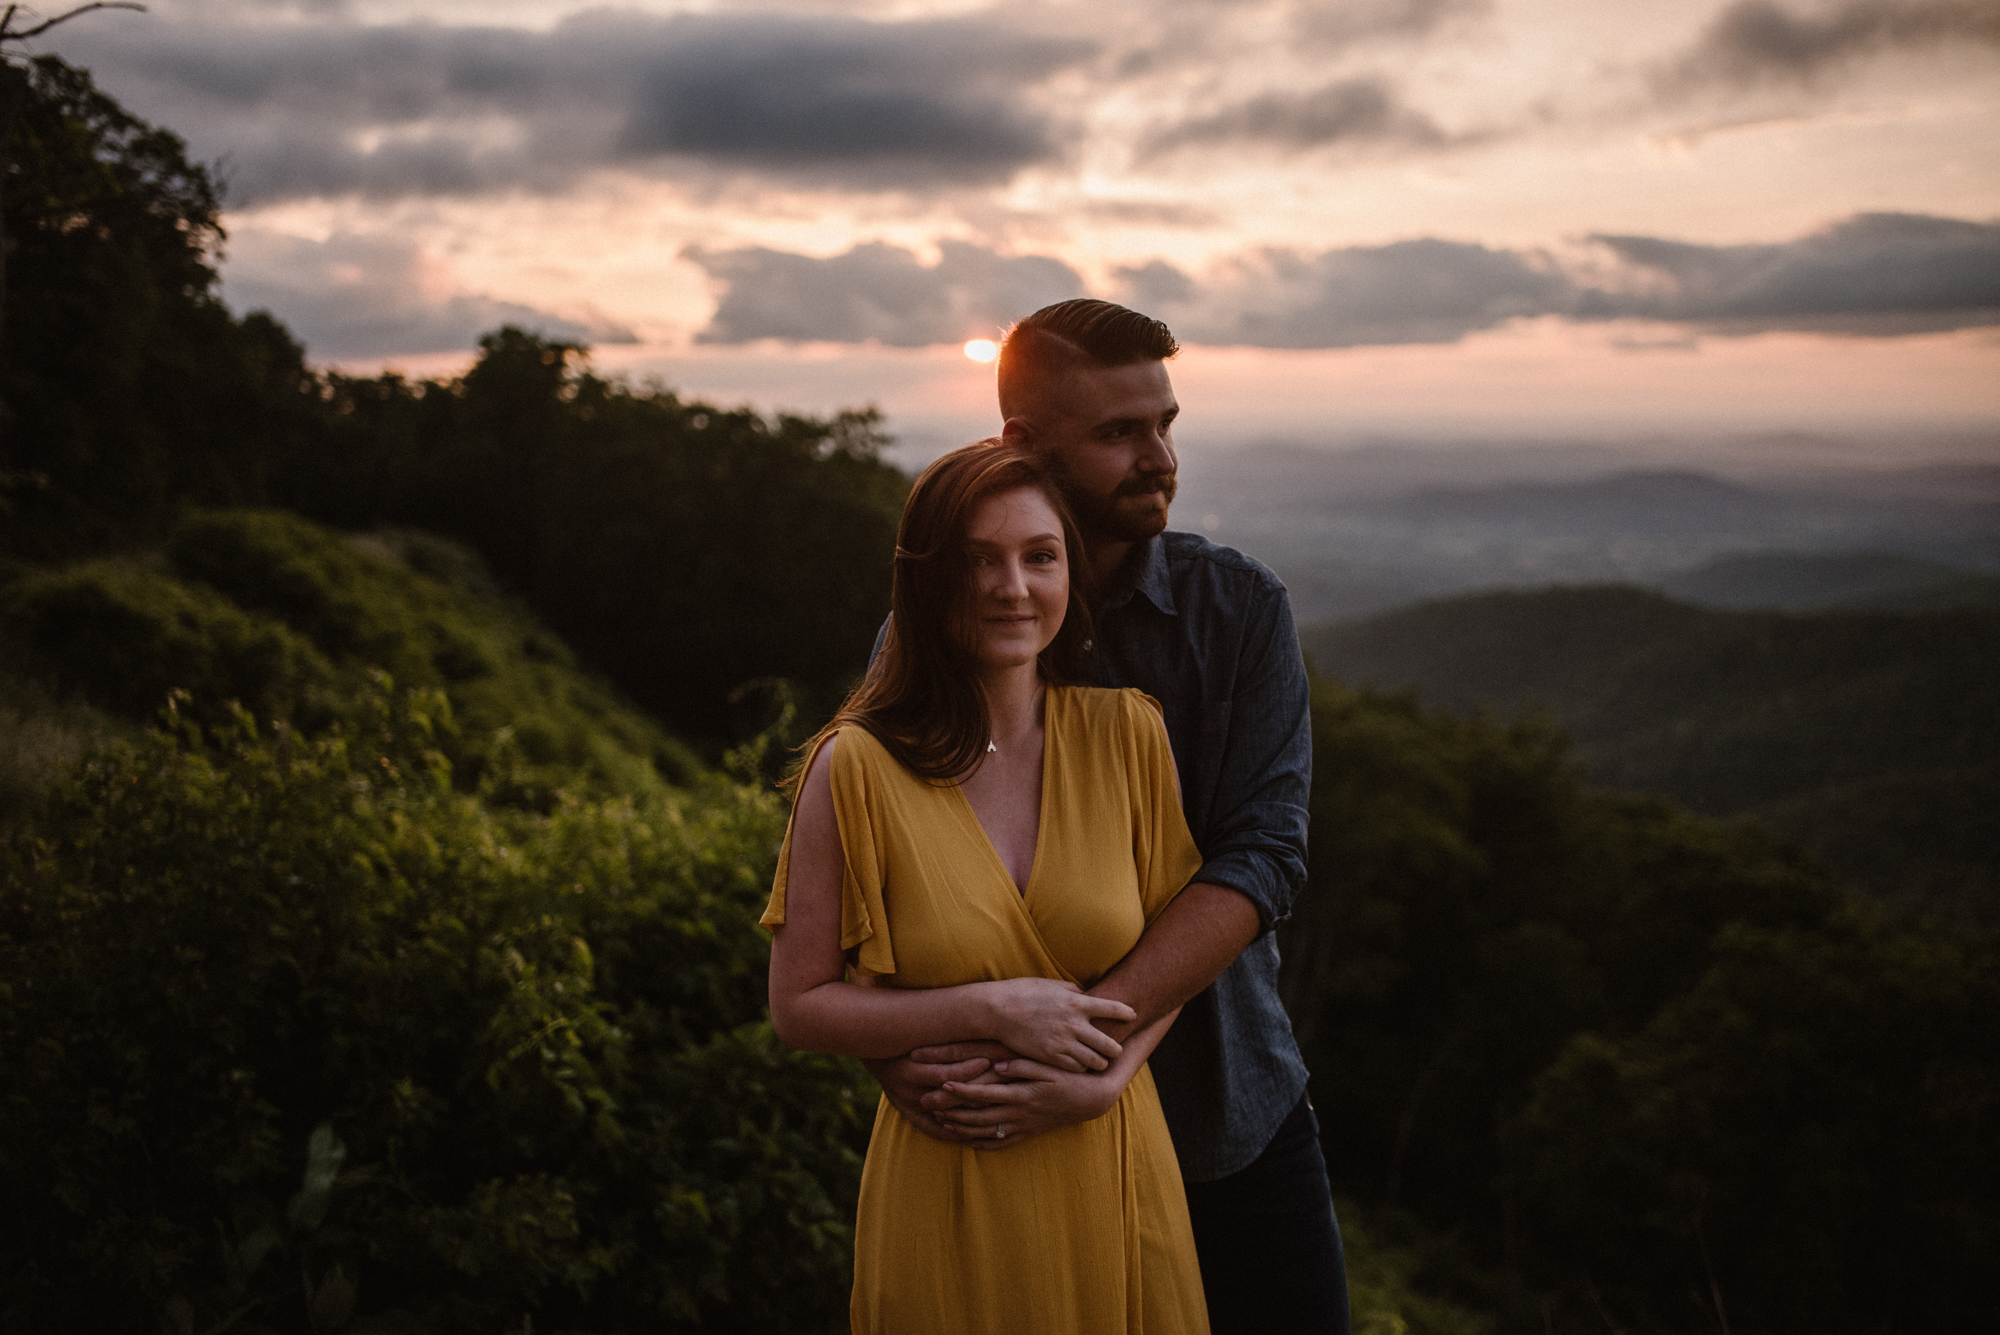 Camryn and Larry Sunrise Engagement Session in Shenandoah National Park - Things to Do in Luray Virginia - Adventurous Couple Photo Shoot White Sails Creative_2.jpg